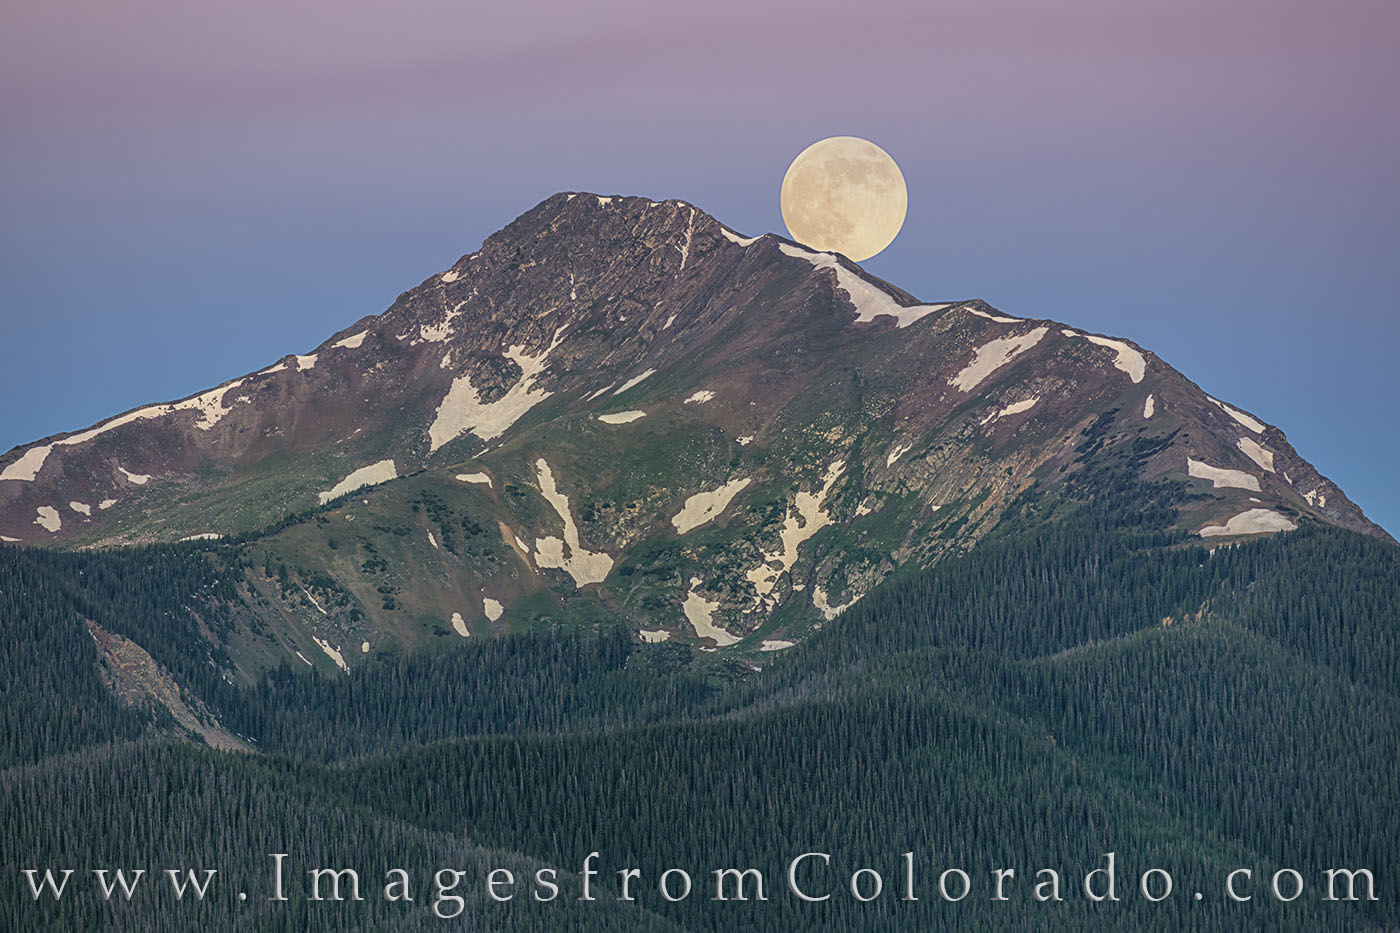 Moonset over Byers Peak in Fraser, Colorado